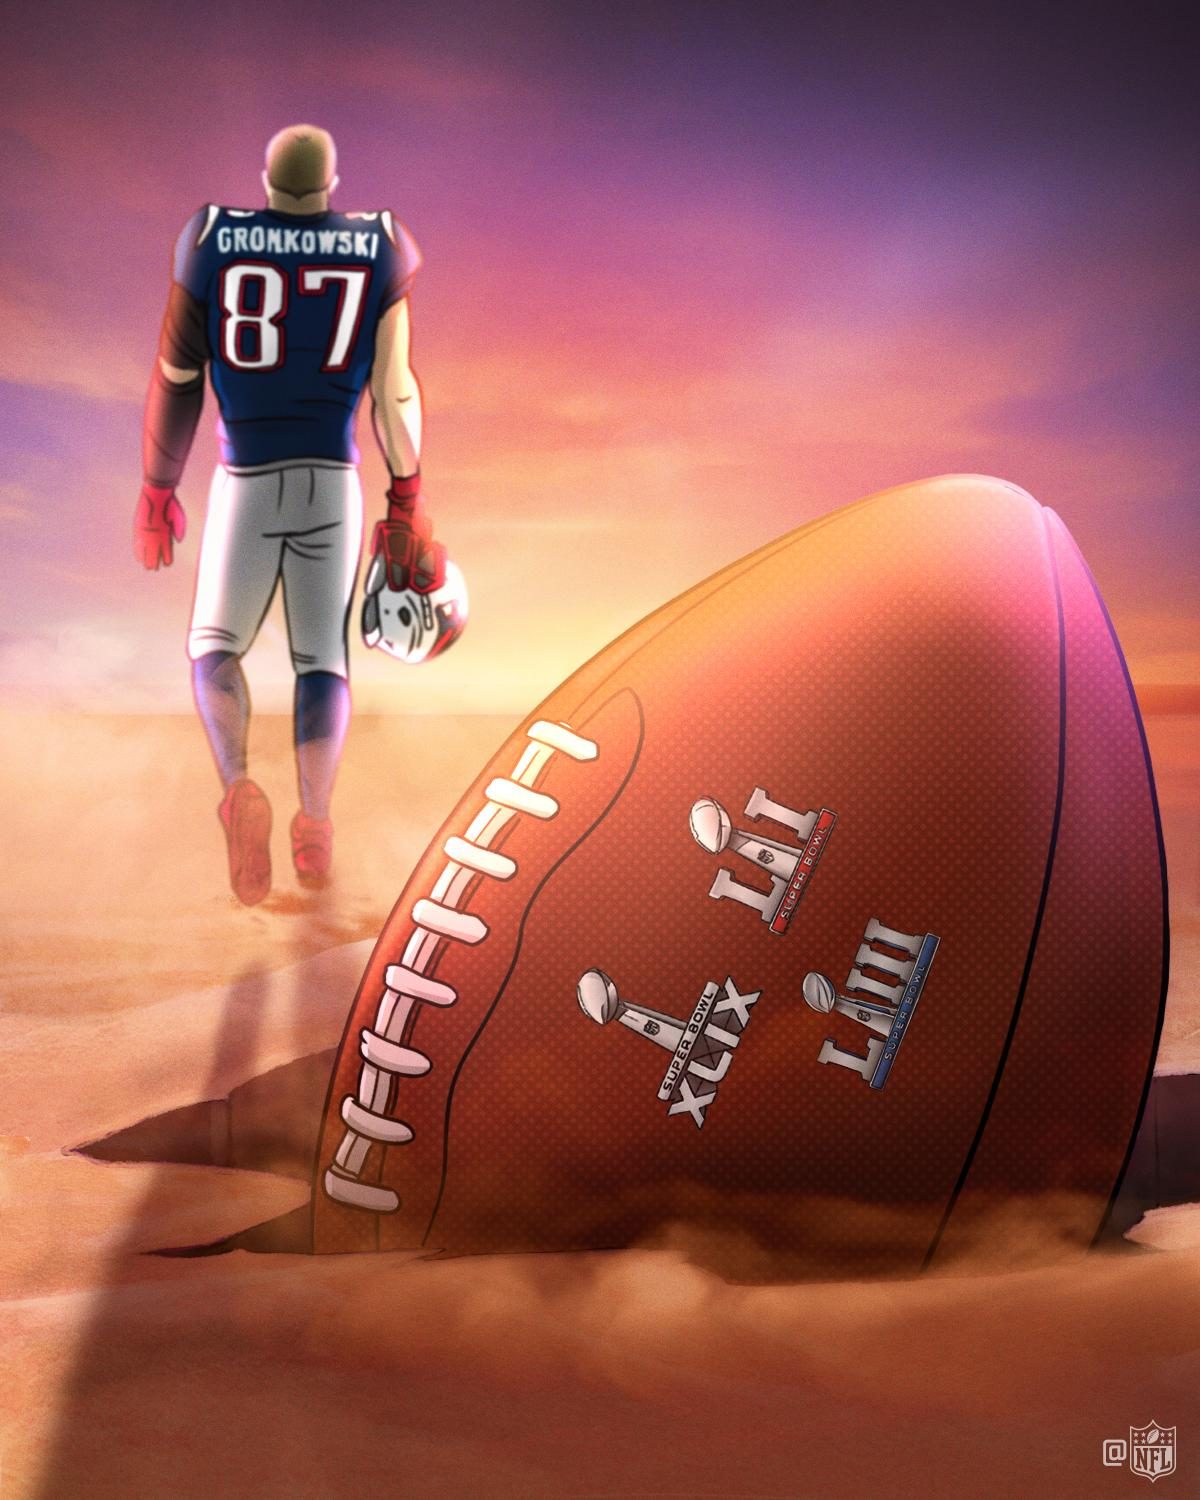 One of the greatest ever... @RobGronkowski �� https://t.co/6NE0VHMrKn